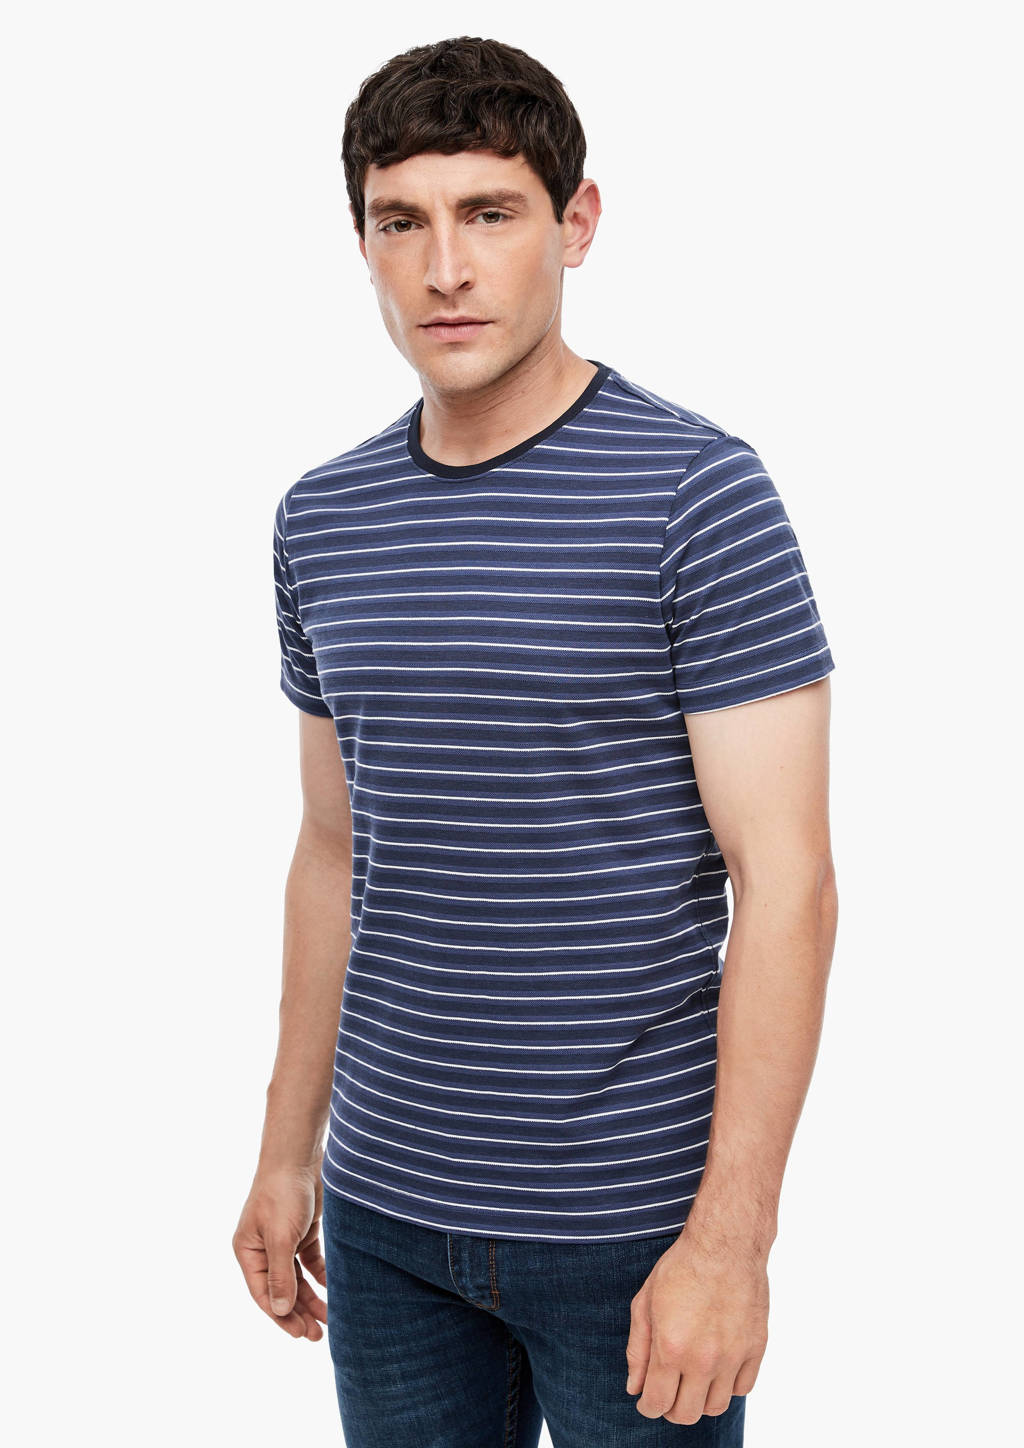 s.Oliver gestreept T-shirt donkerblauw, Donkerblauw